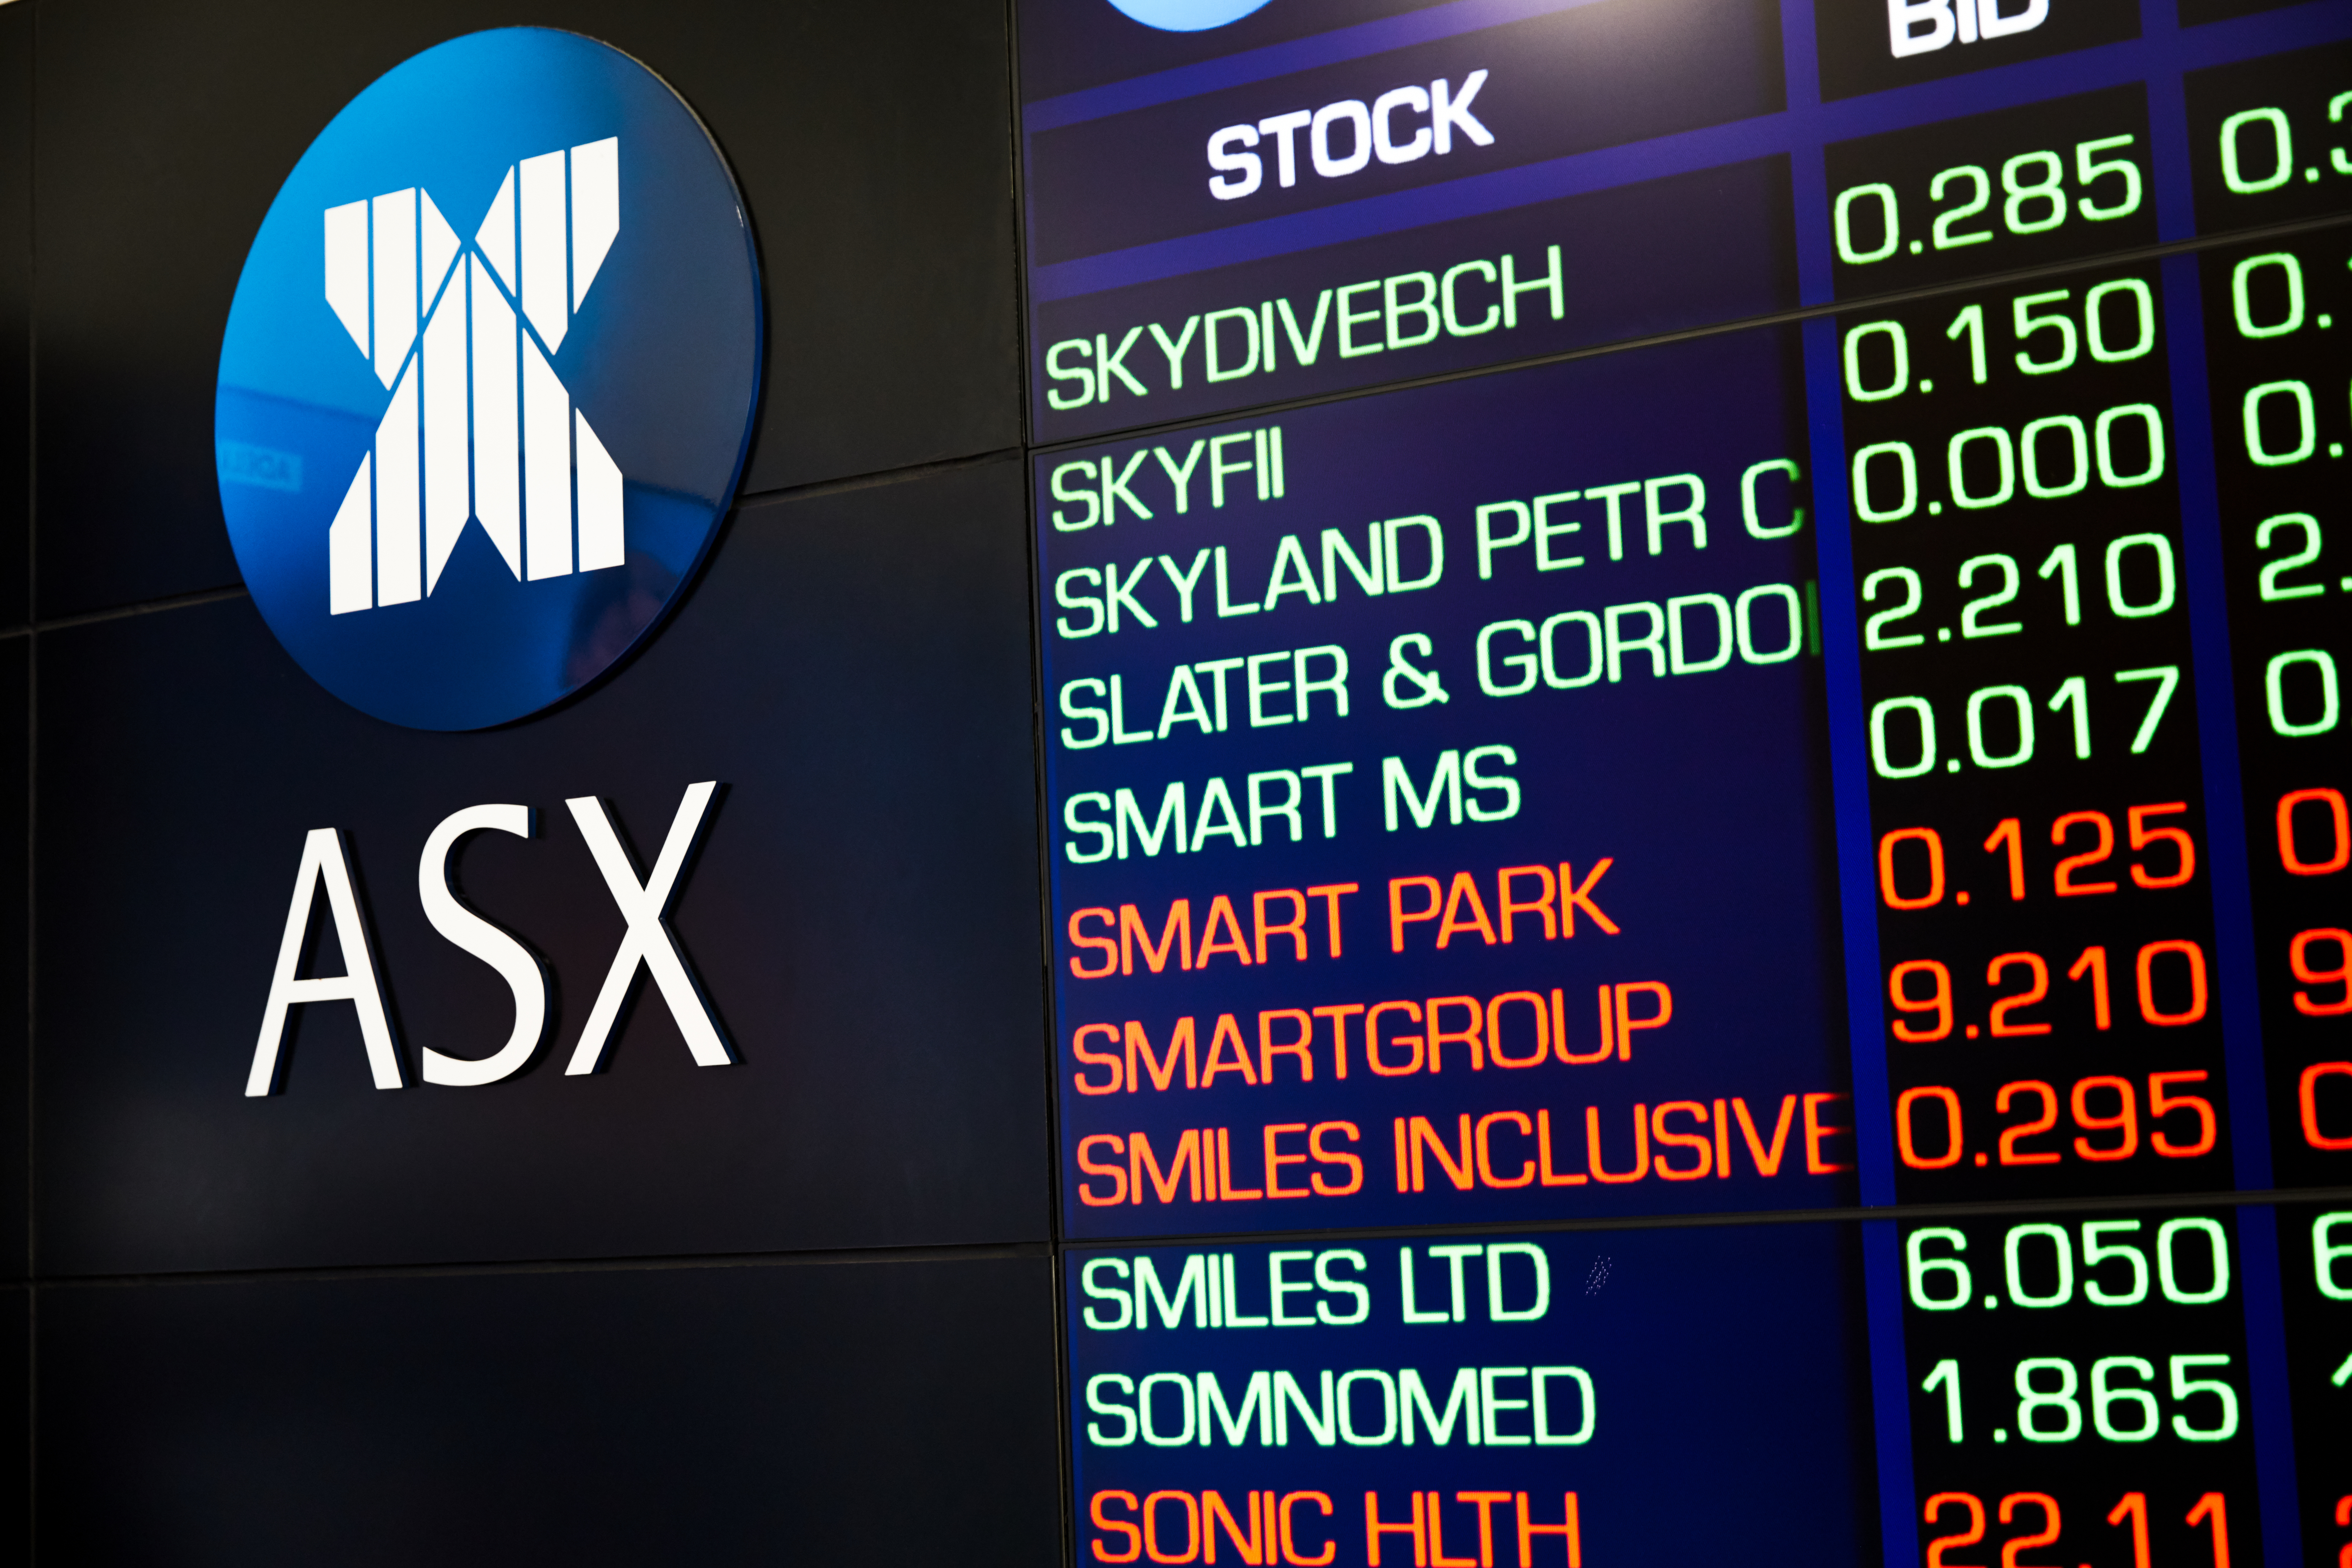 Australian shares are set to slide on the first day of 2019.